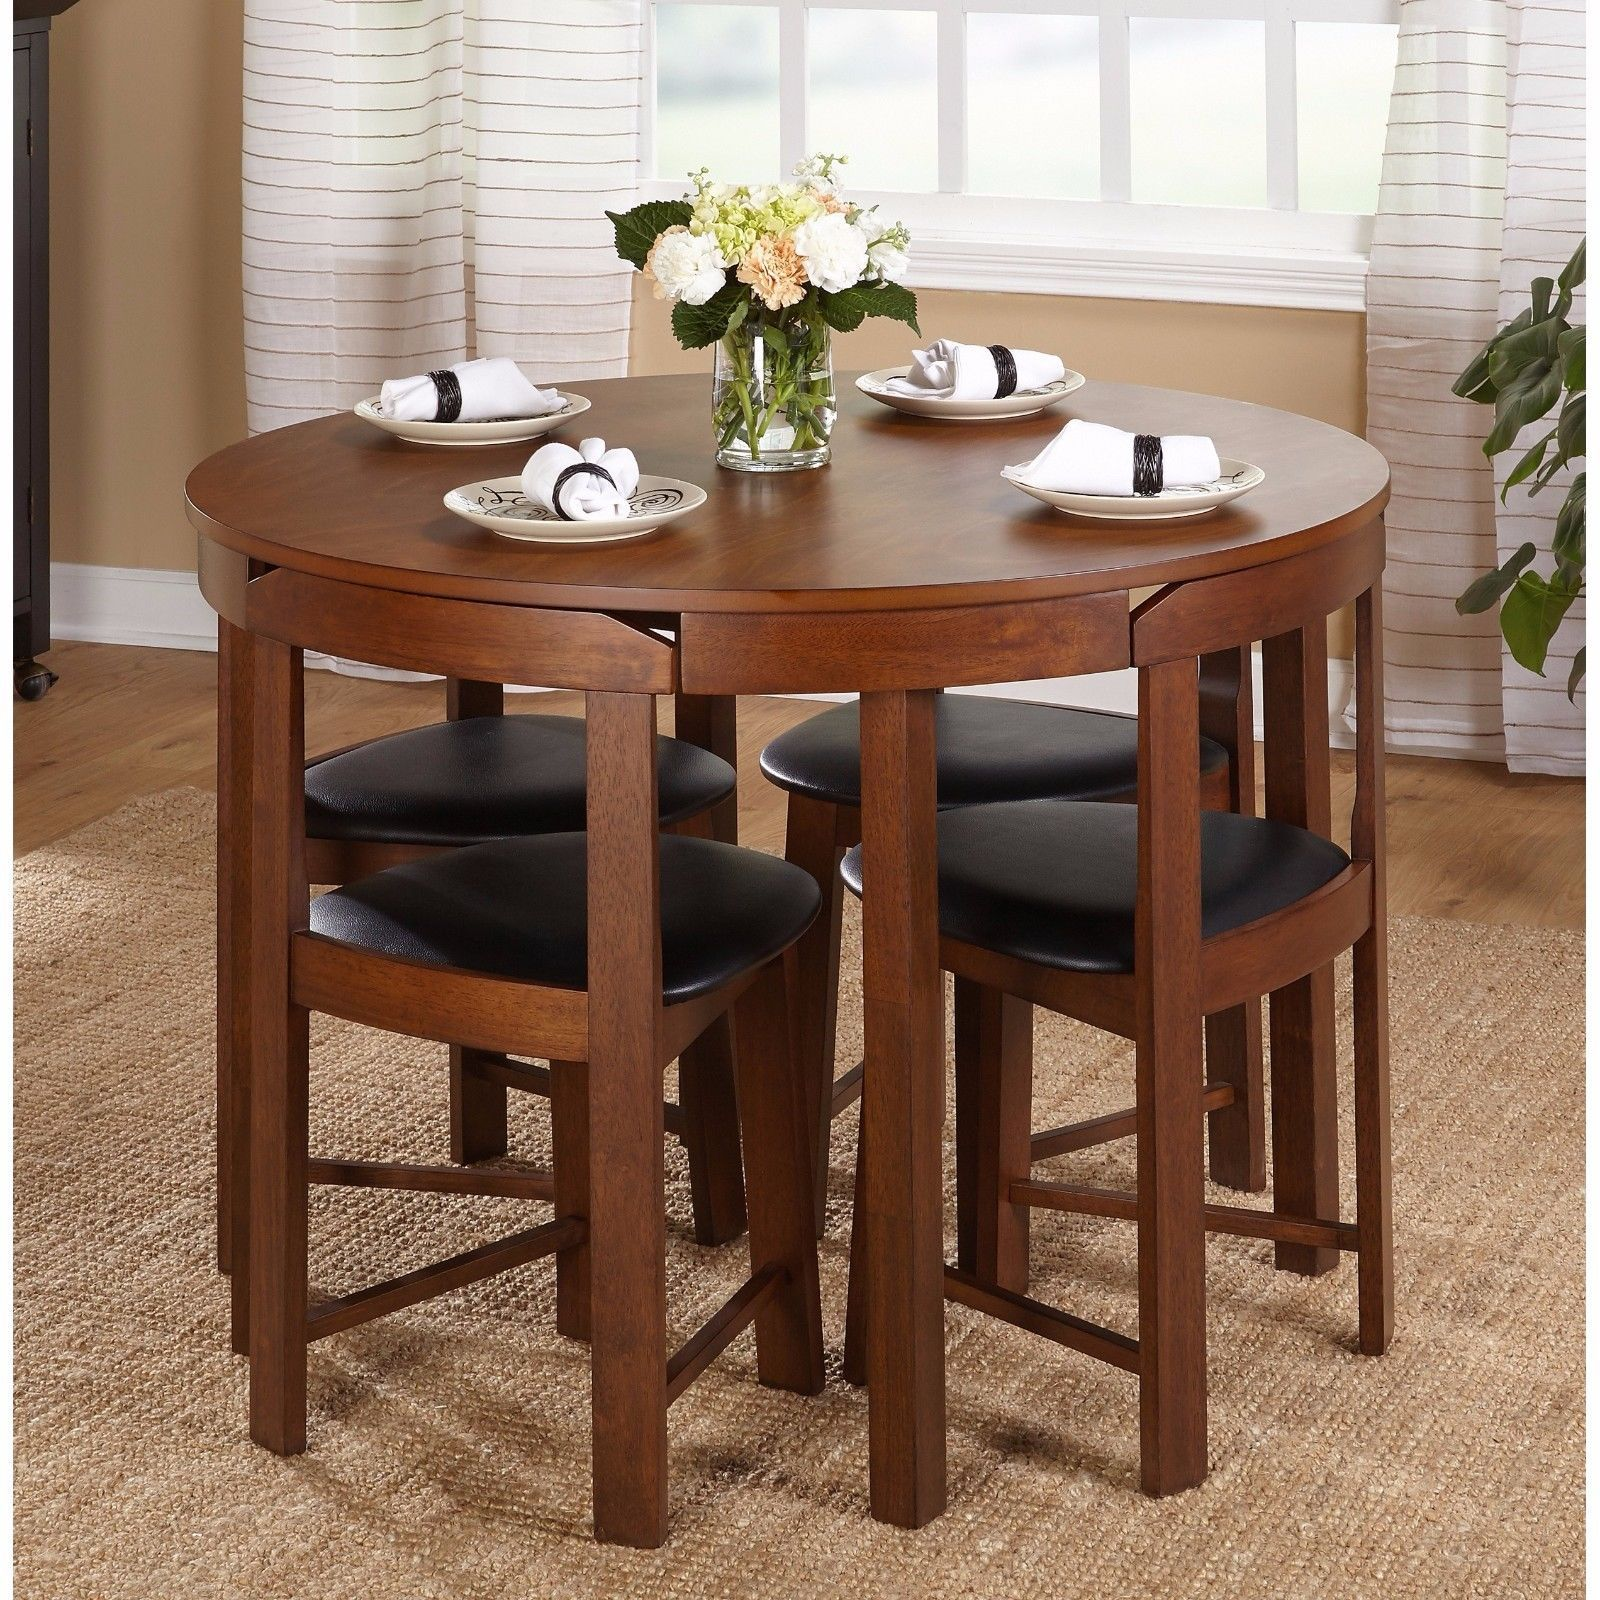 Cheap Kitchen Tables For Small Spaces Dining Table Set For 4 Small Spaces Round Kitchen Table And Chairs